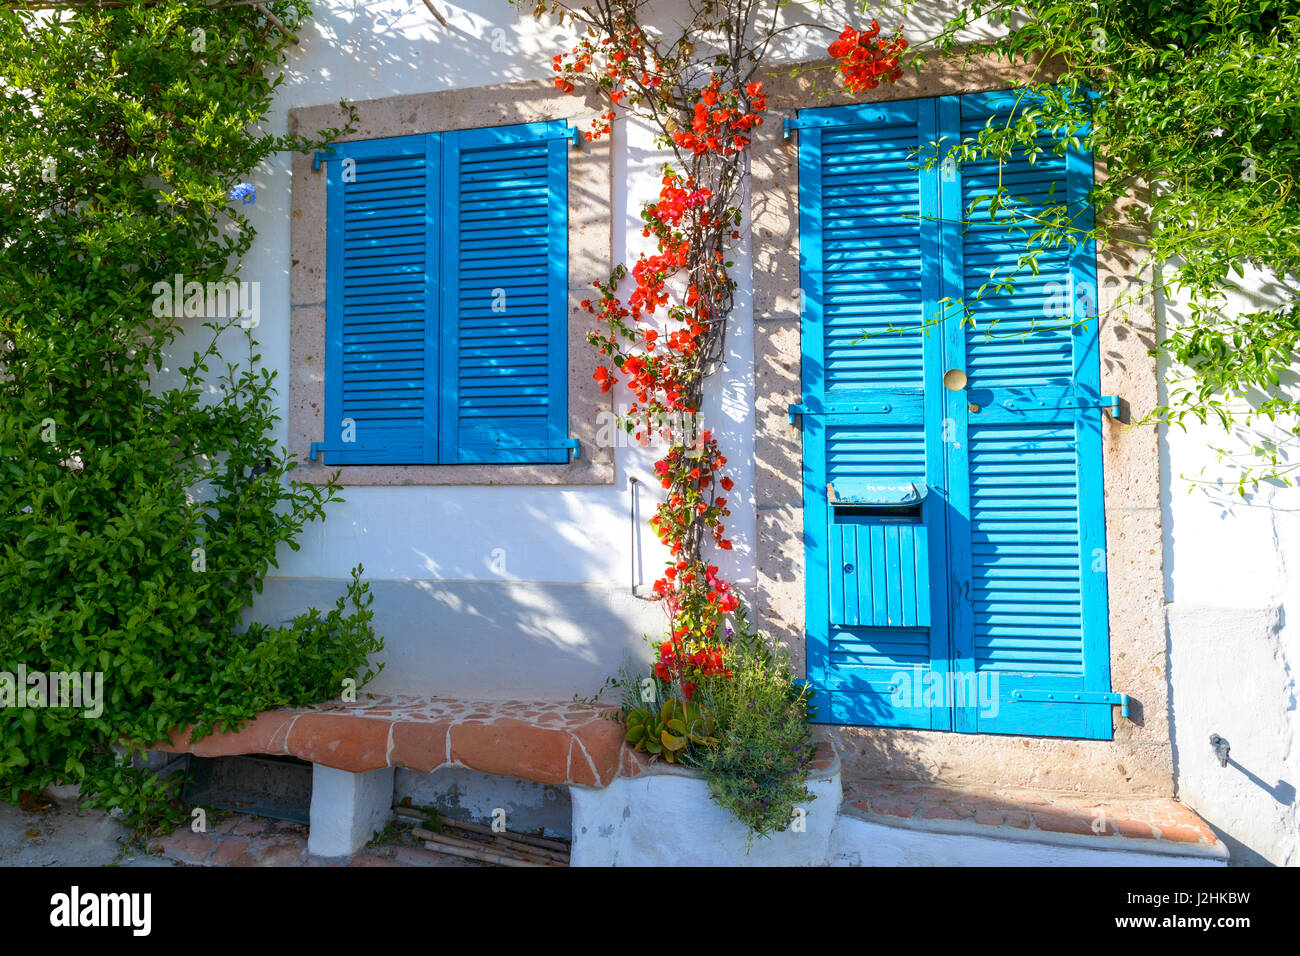 Typical Mediterranean house with white walls and blue fixtures Stock